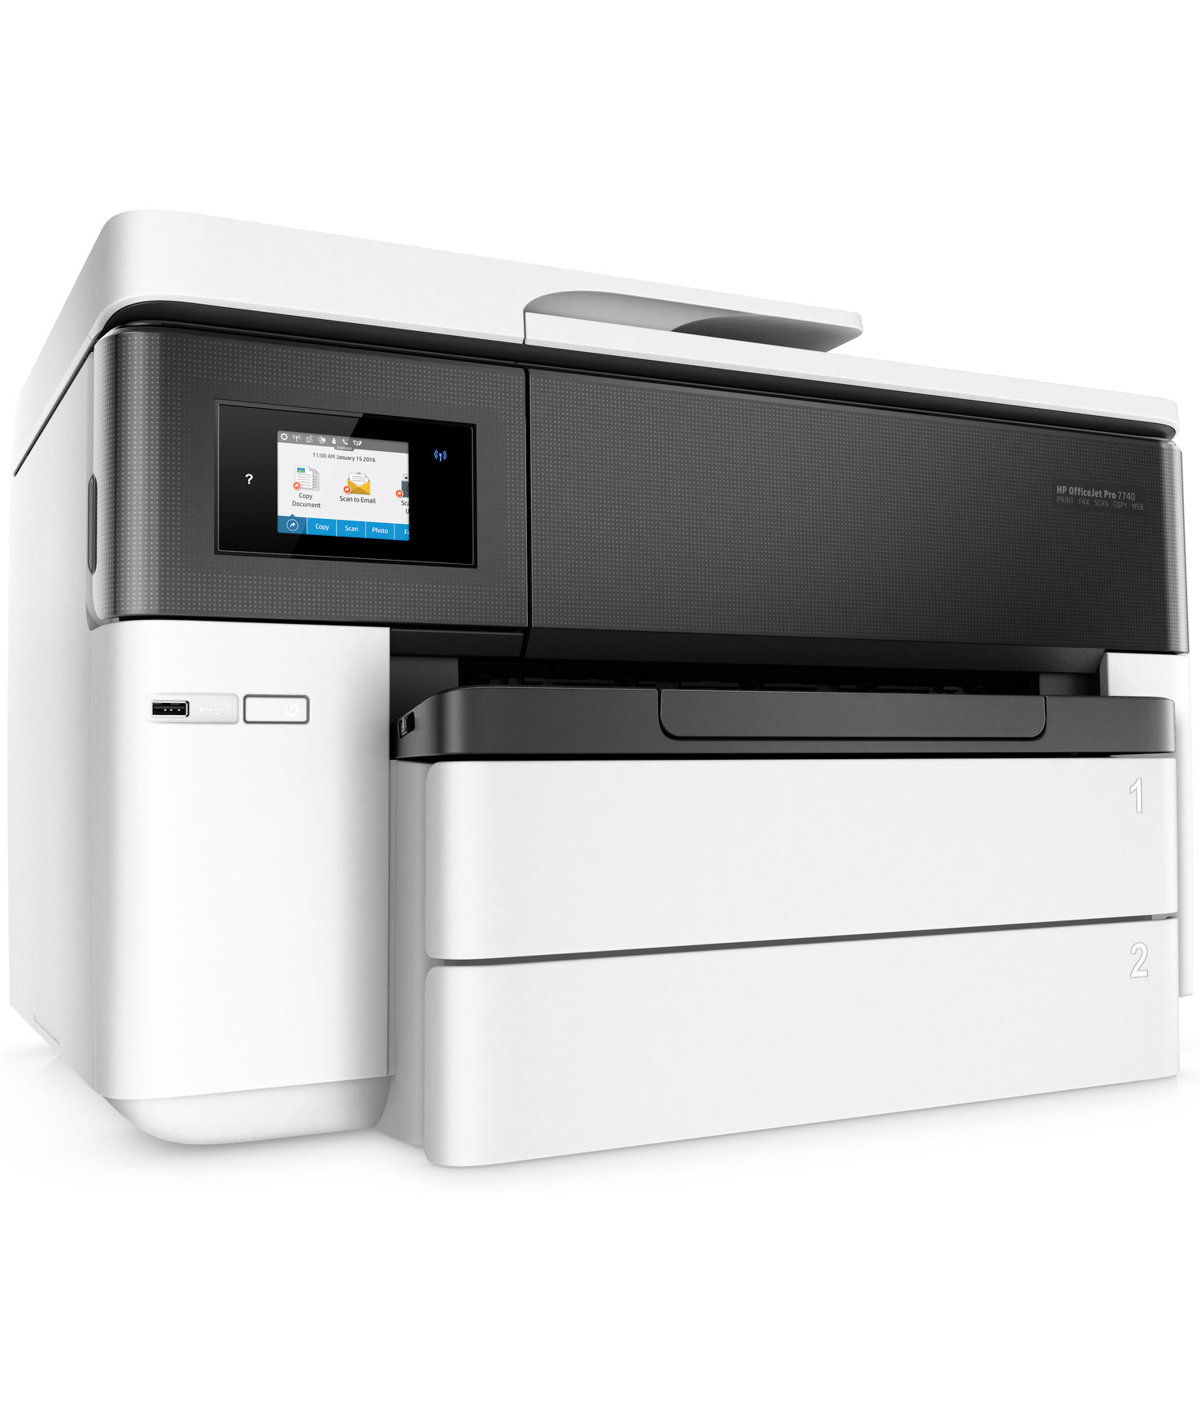 HP ficeJet 7740 Pro Wide Format All in e Printer with Wireless Mobile Printing G5J38A by fice Depot & ficeMax